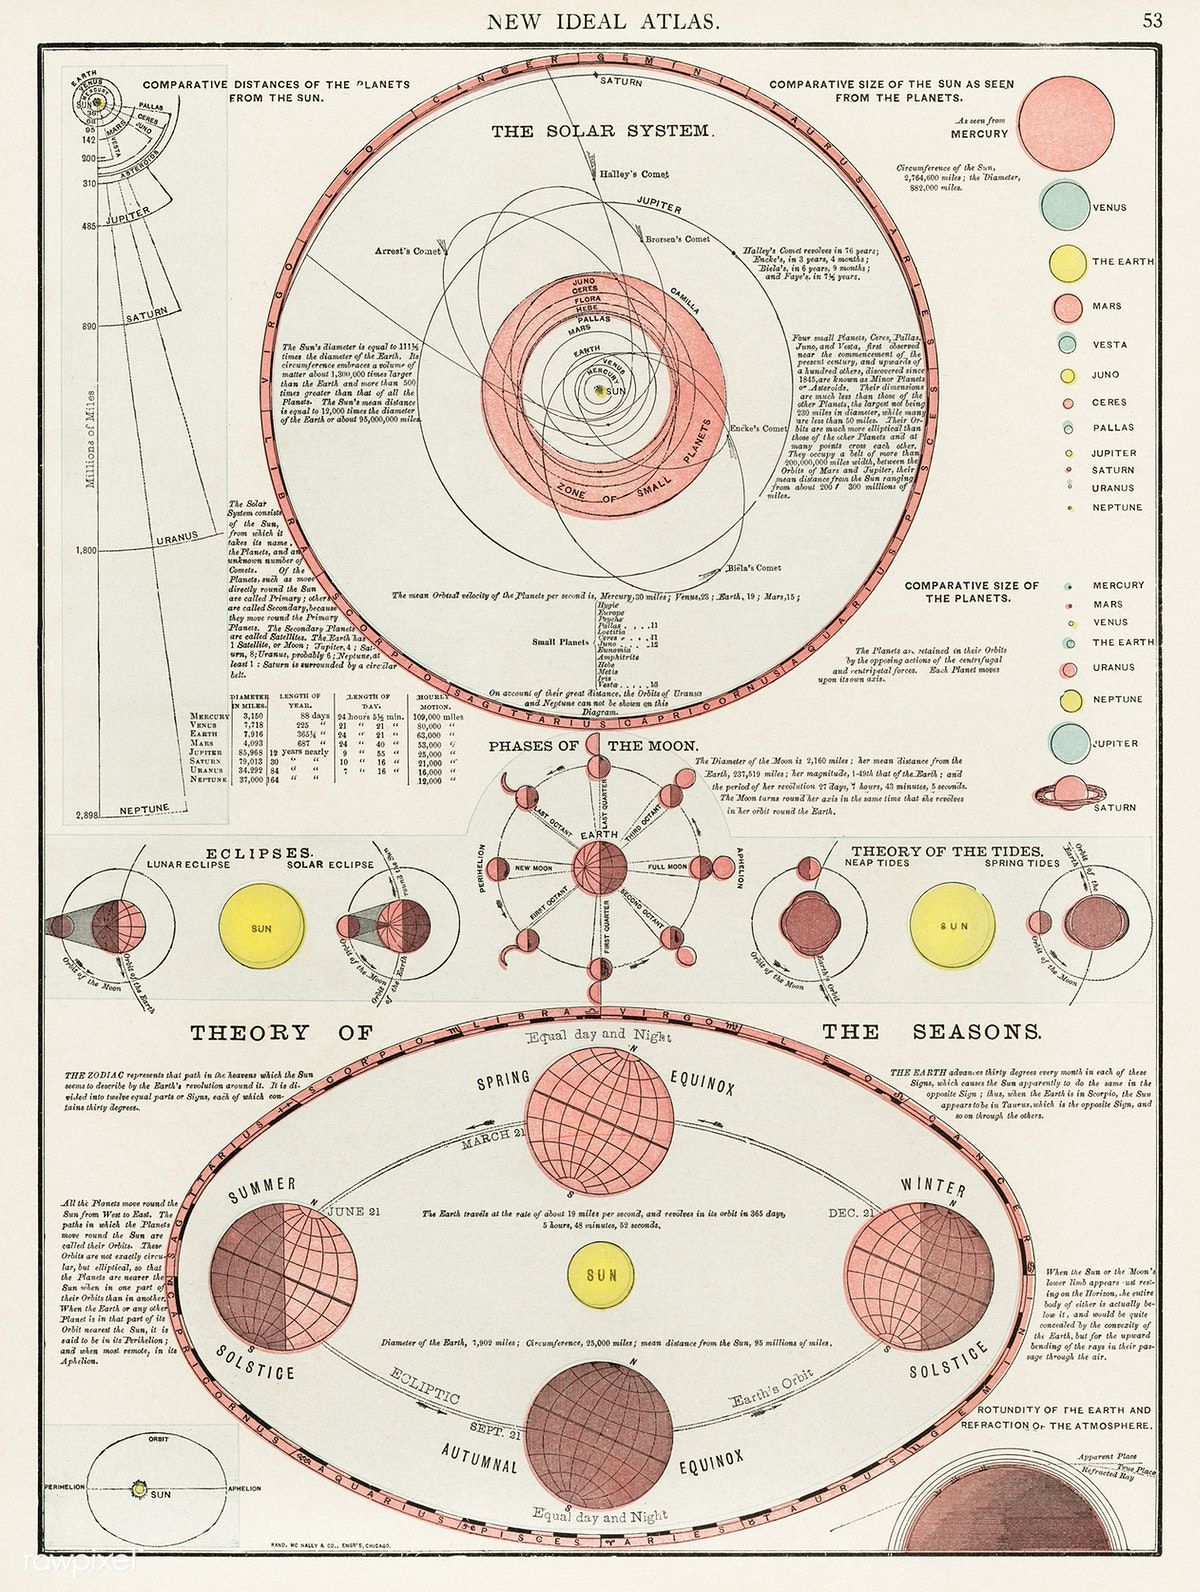 New Ideal Atlas, printed in 1909, an antique celestial